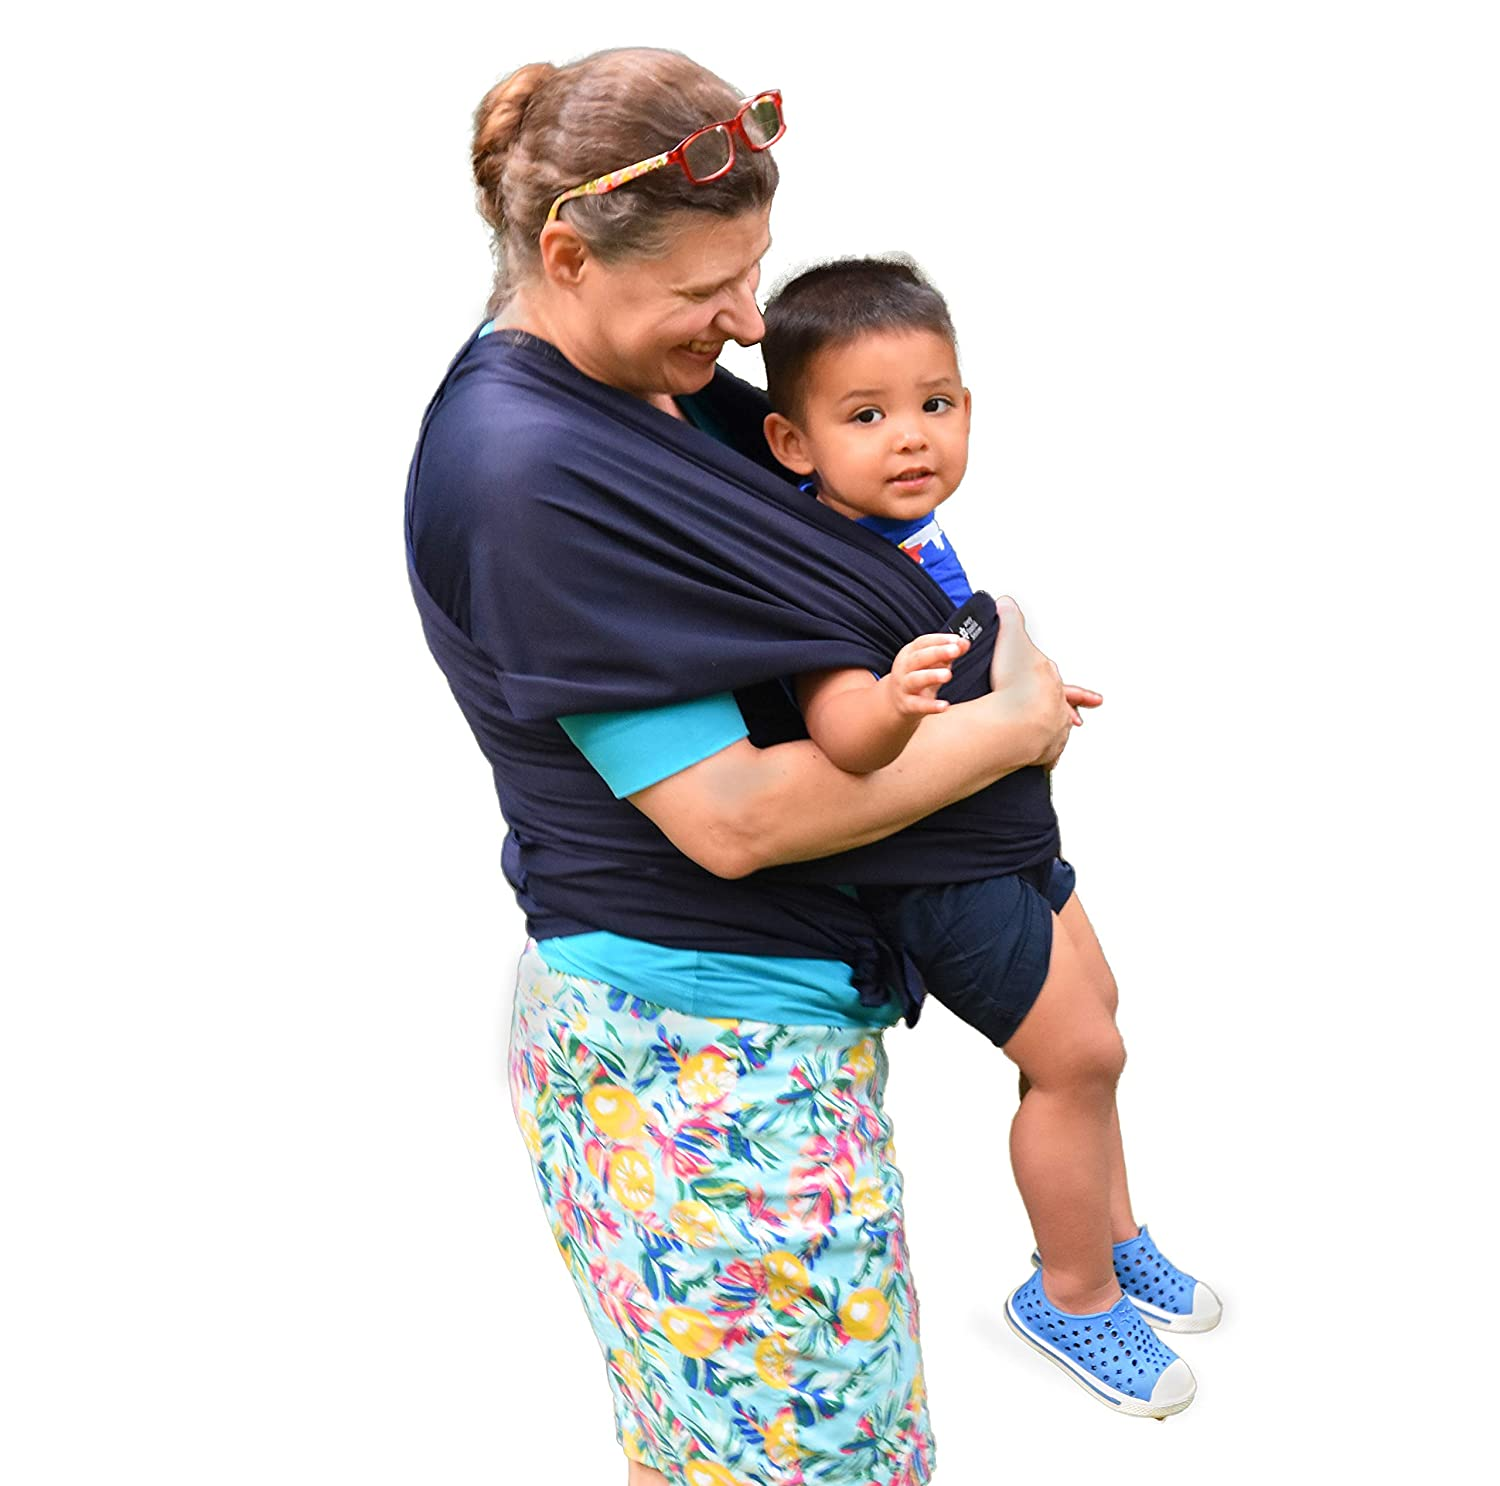 Baby Wrap Carrier: Soft, Stretchy, Breathable Cotton Baby Wrap, Baby Sling, Nursing Cover Up for use with Newborn-Toddler: Evenly distributes Weight for More Comfortable Carrying (Navy Blue)